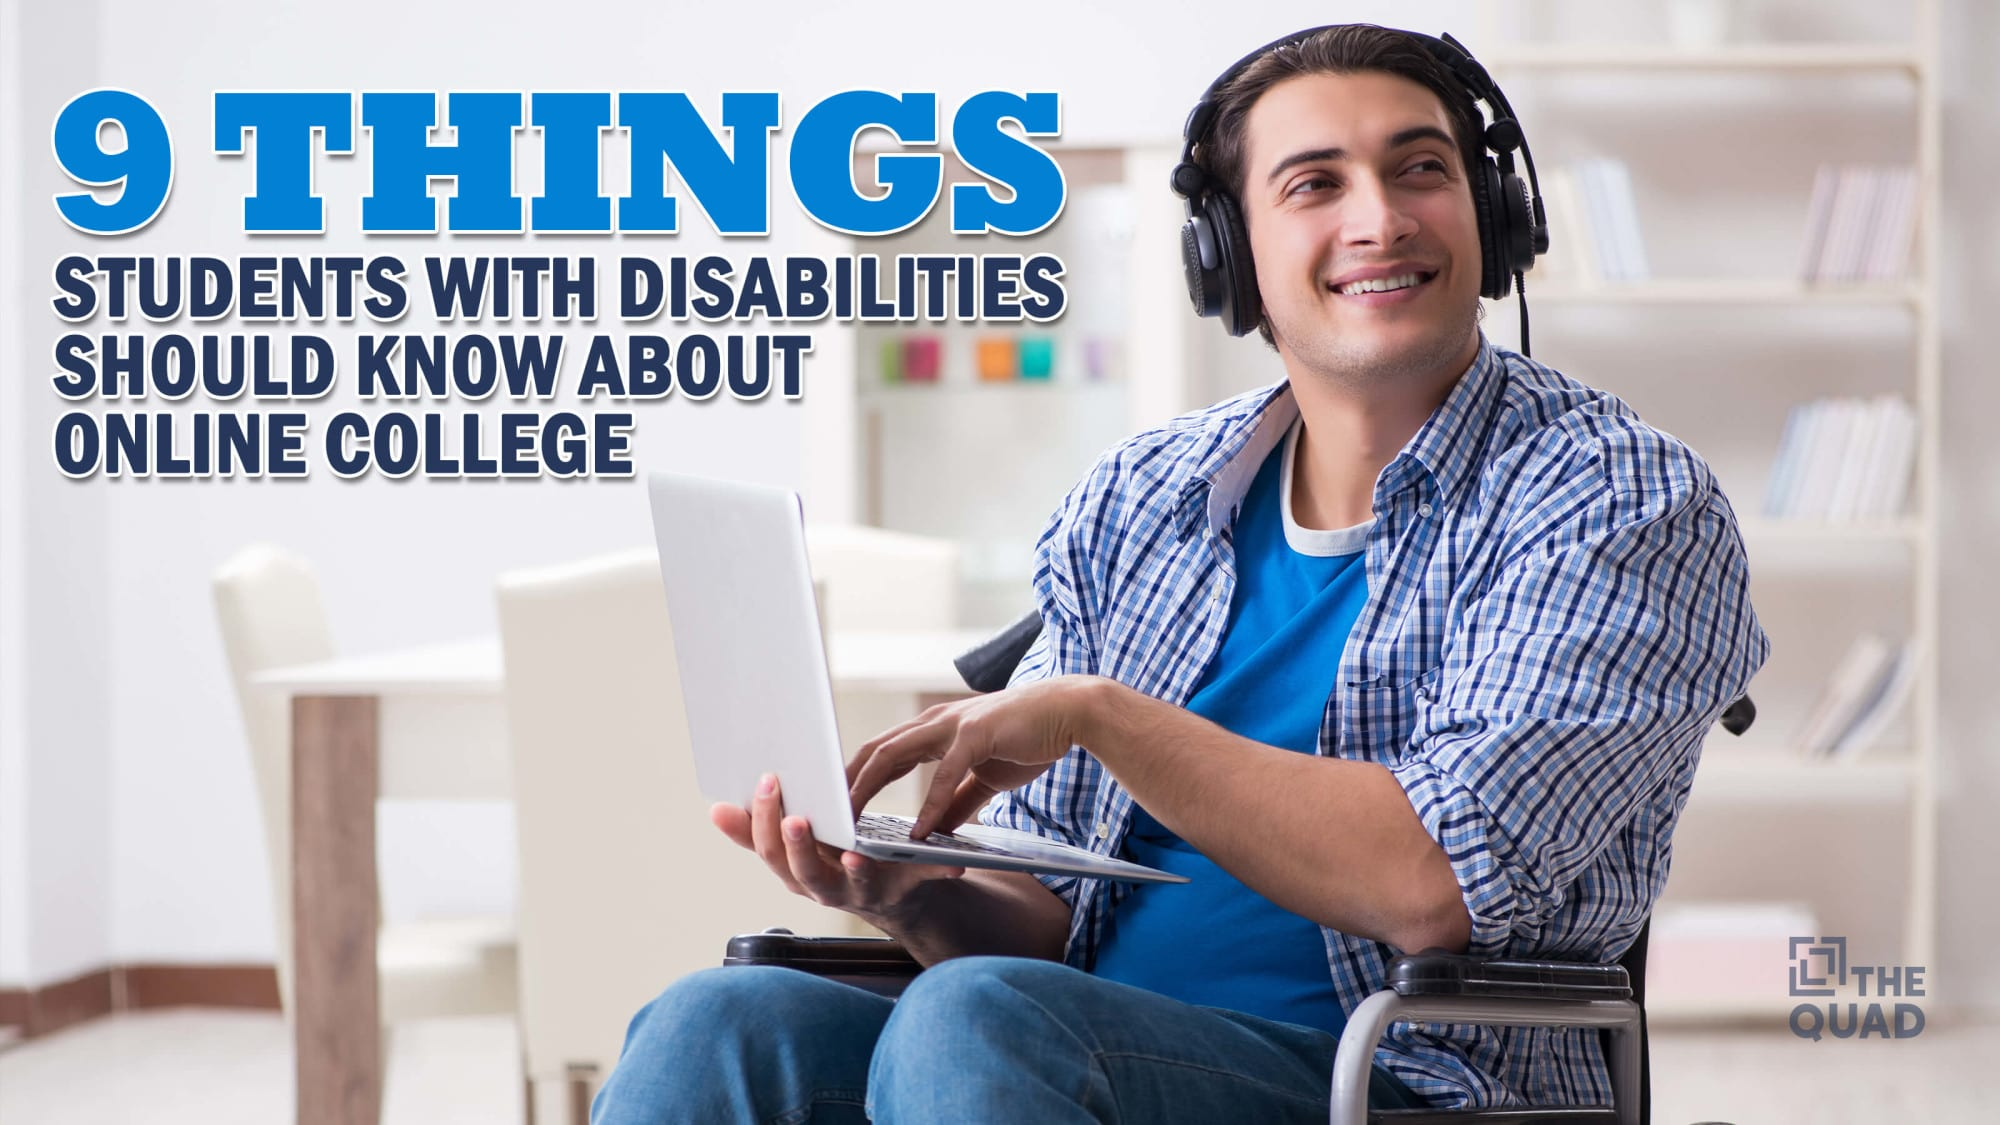 9 Things Students With Disabilities Should Know About Online College